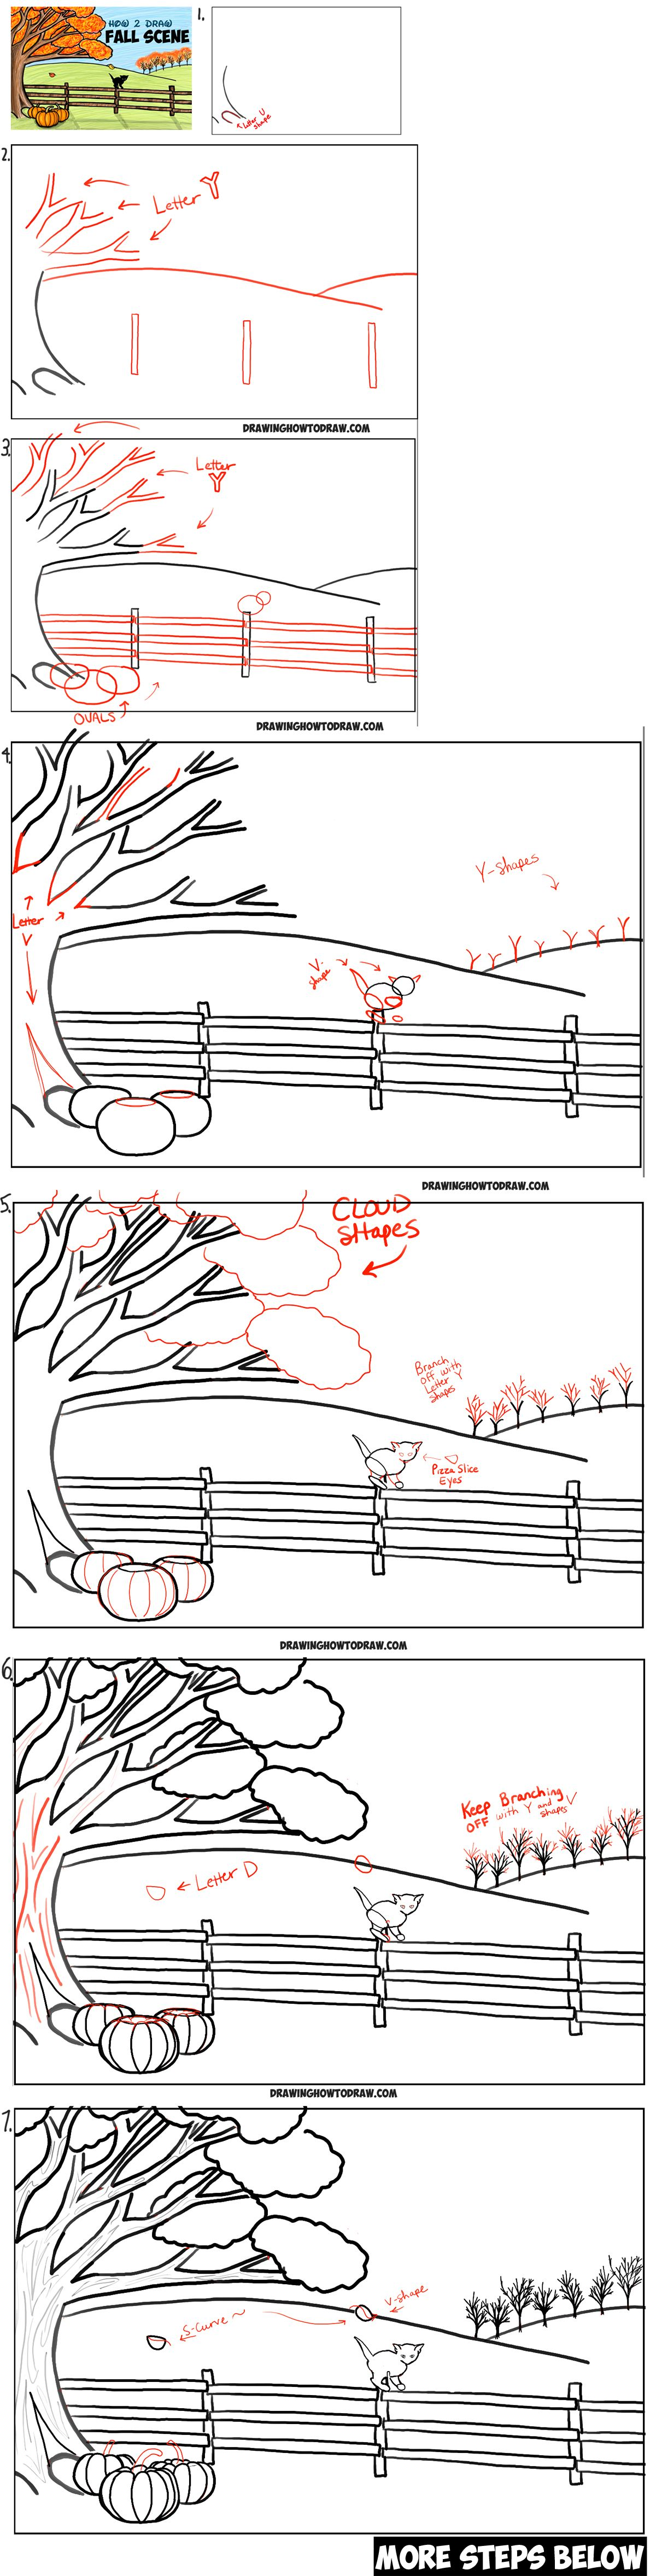 How To Draw An Autumn Fall Scene Step By Step Drawing Tutorial For Kids How To Draw Step By Step Drawing Tutorials Step By Step Drawing Drawing Tutorials For Kids